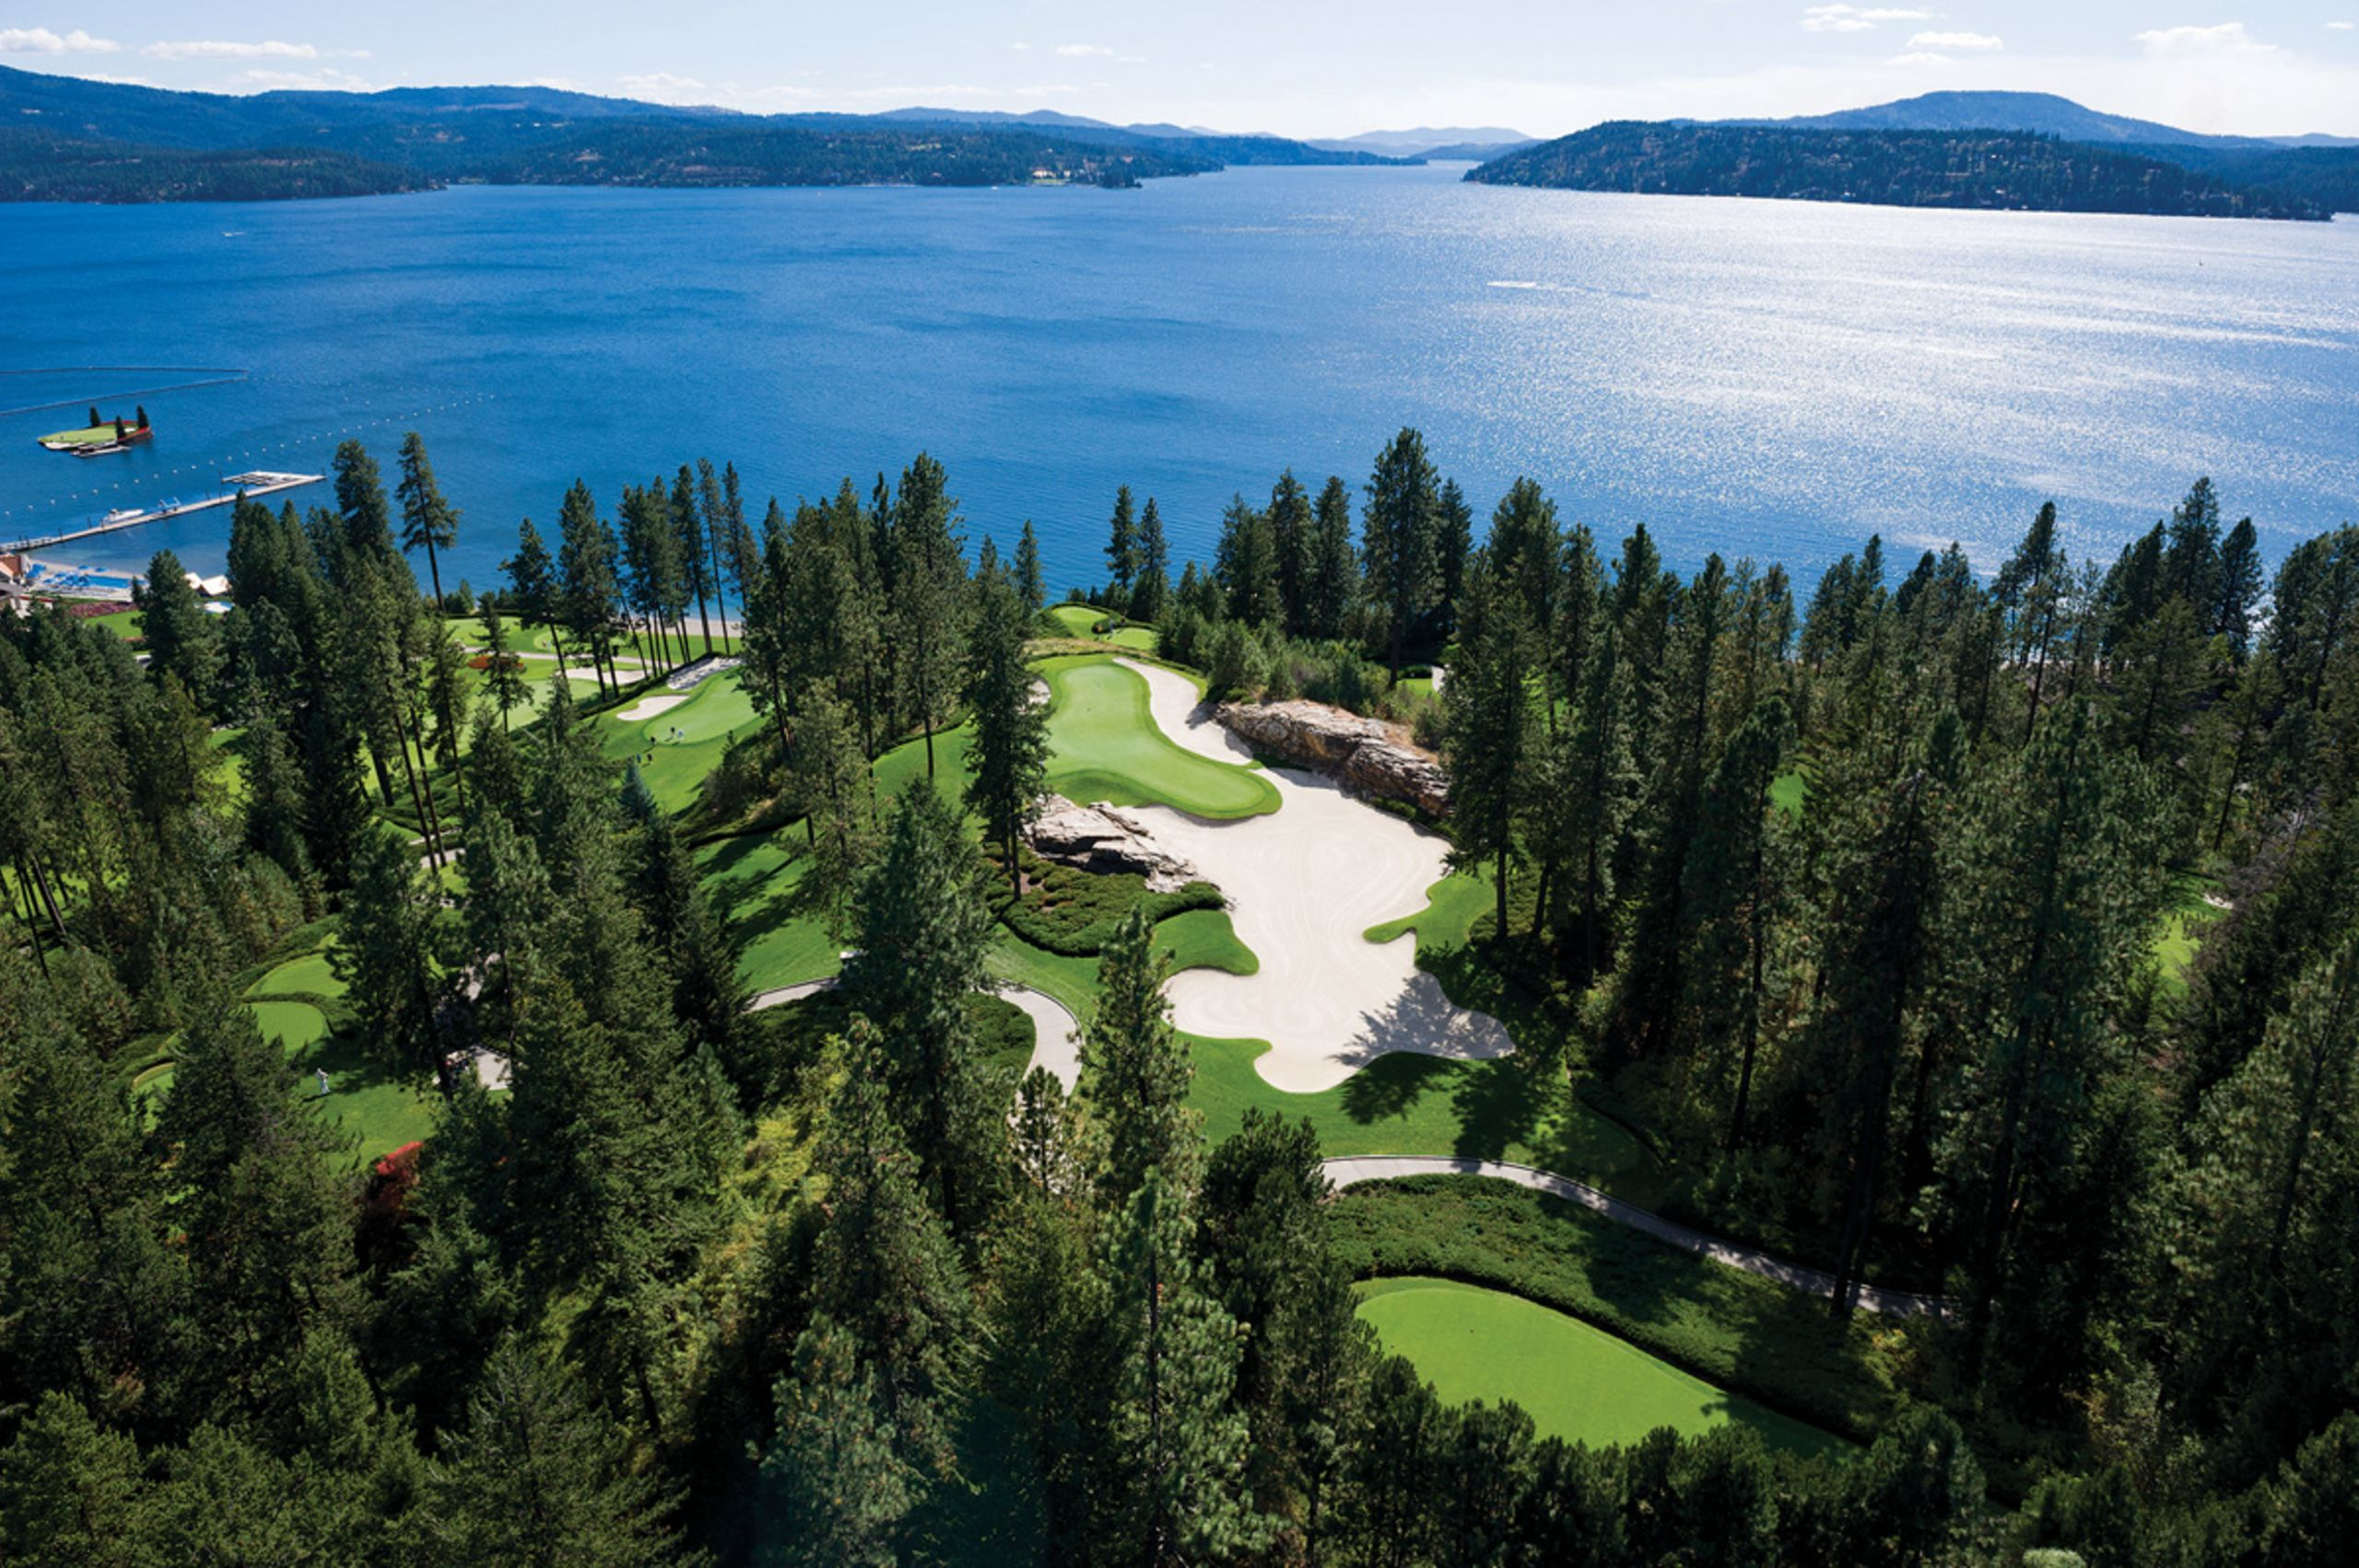 The Coeur d'Alene Resort Golf Course